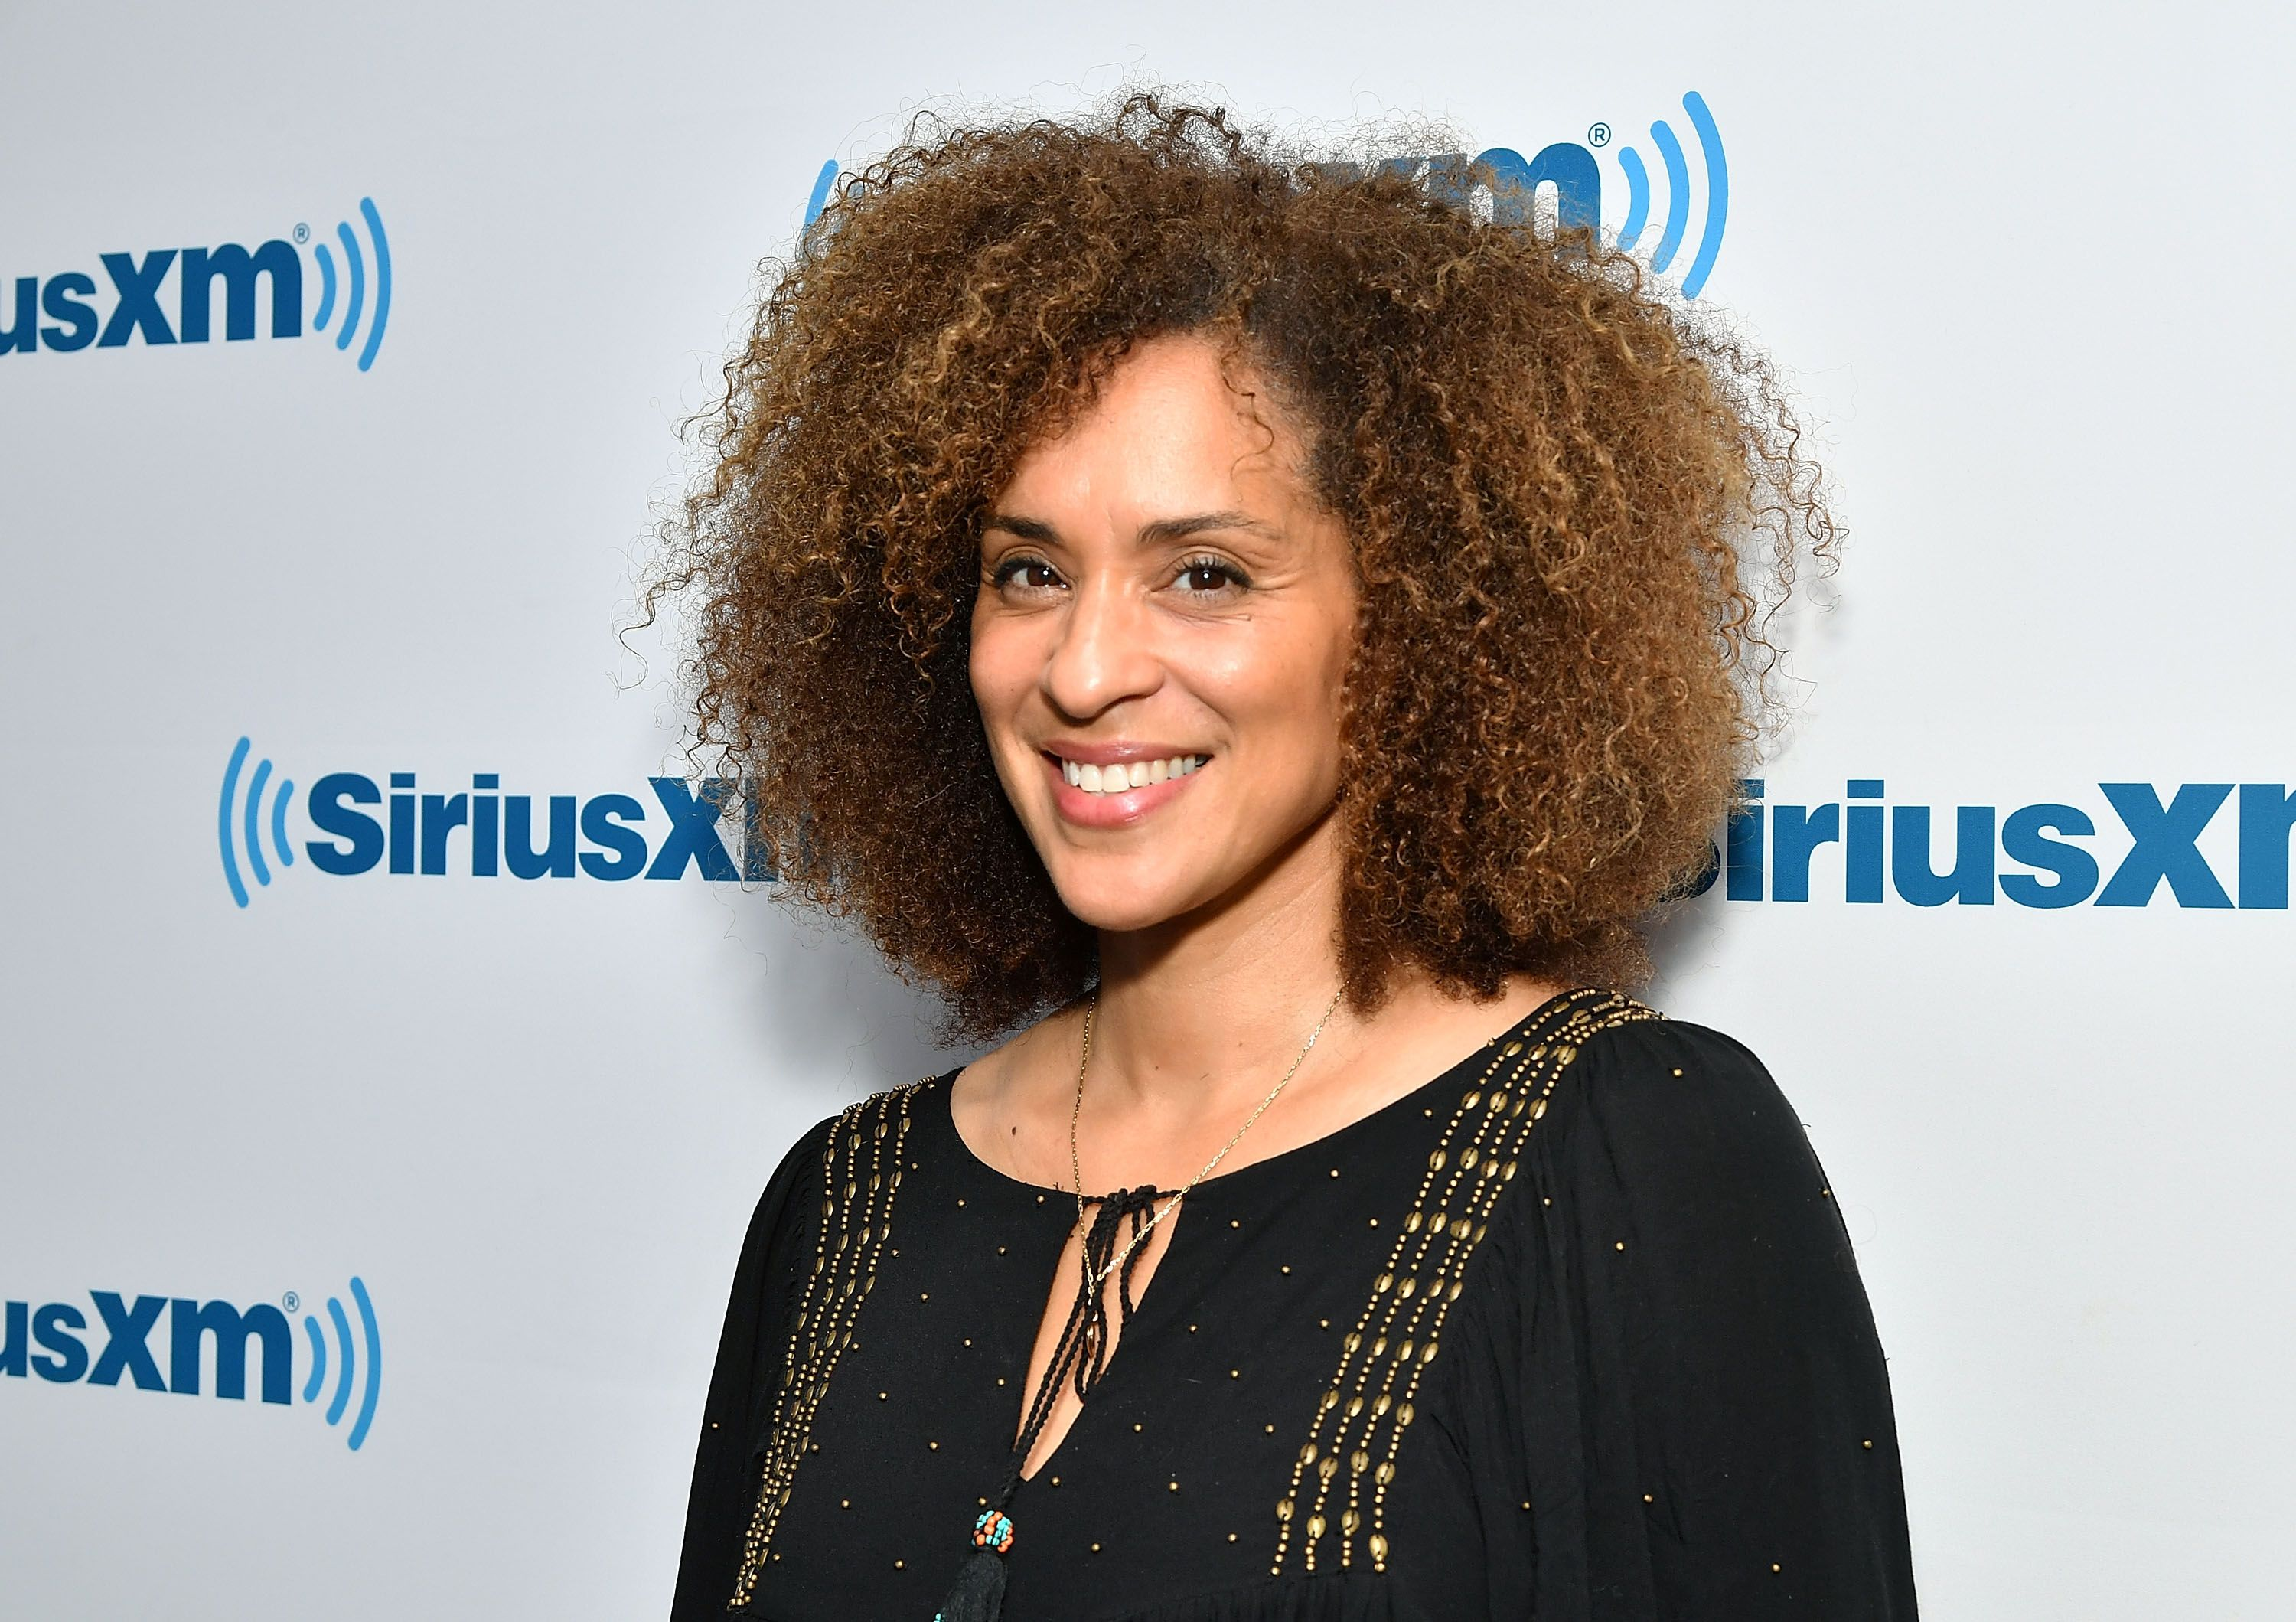 Karyn Parsons at SiriusXM Studios in New York City in 2017 | Source: Getty Images